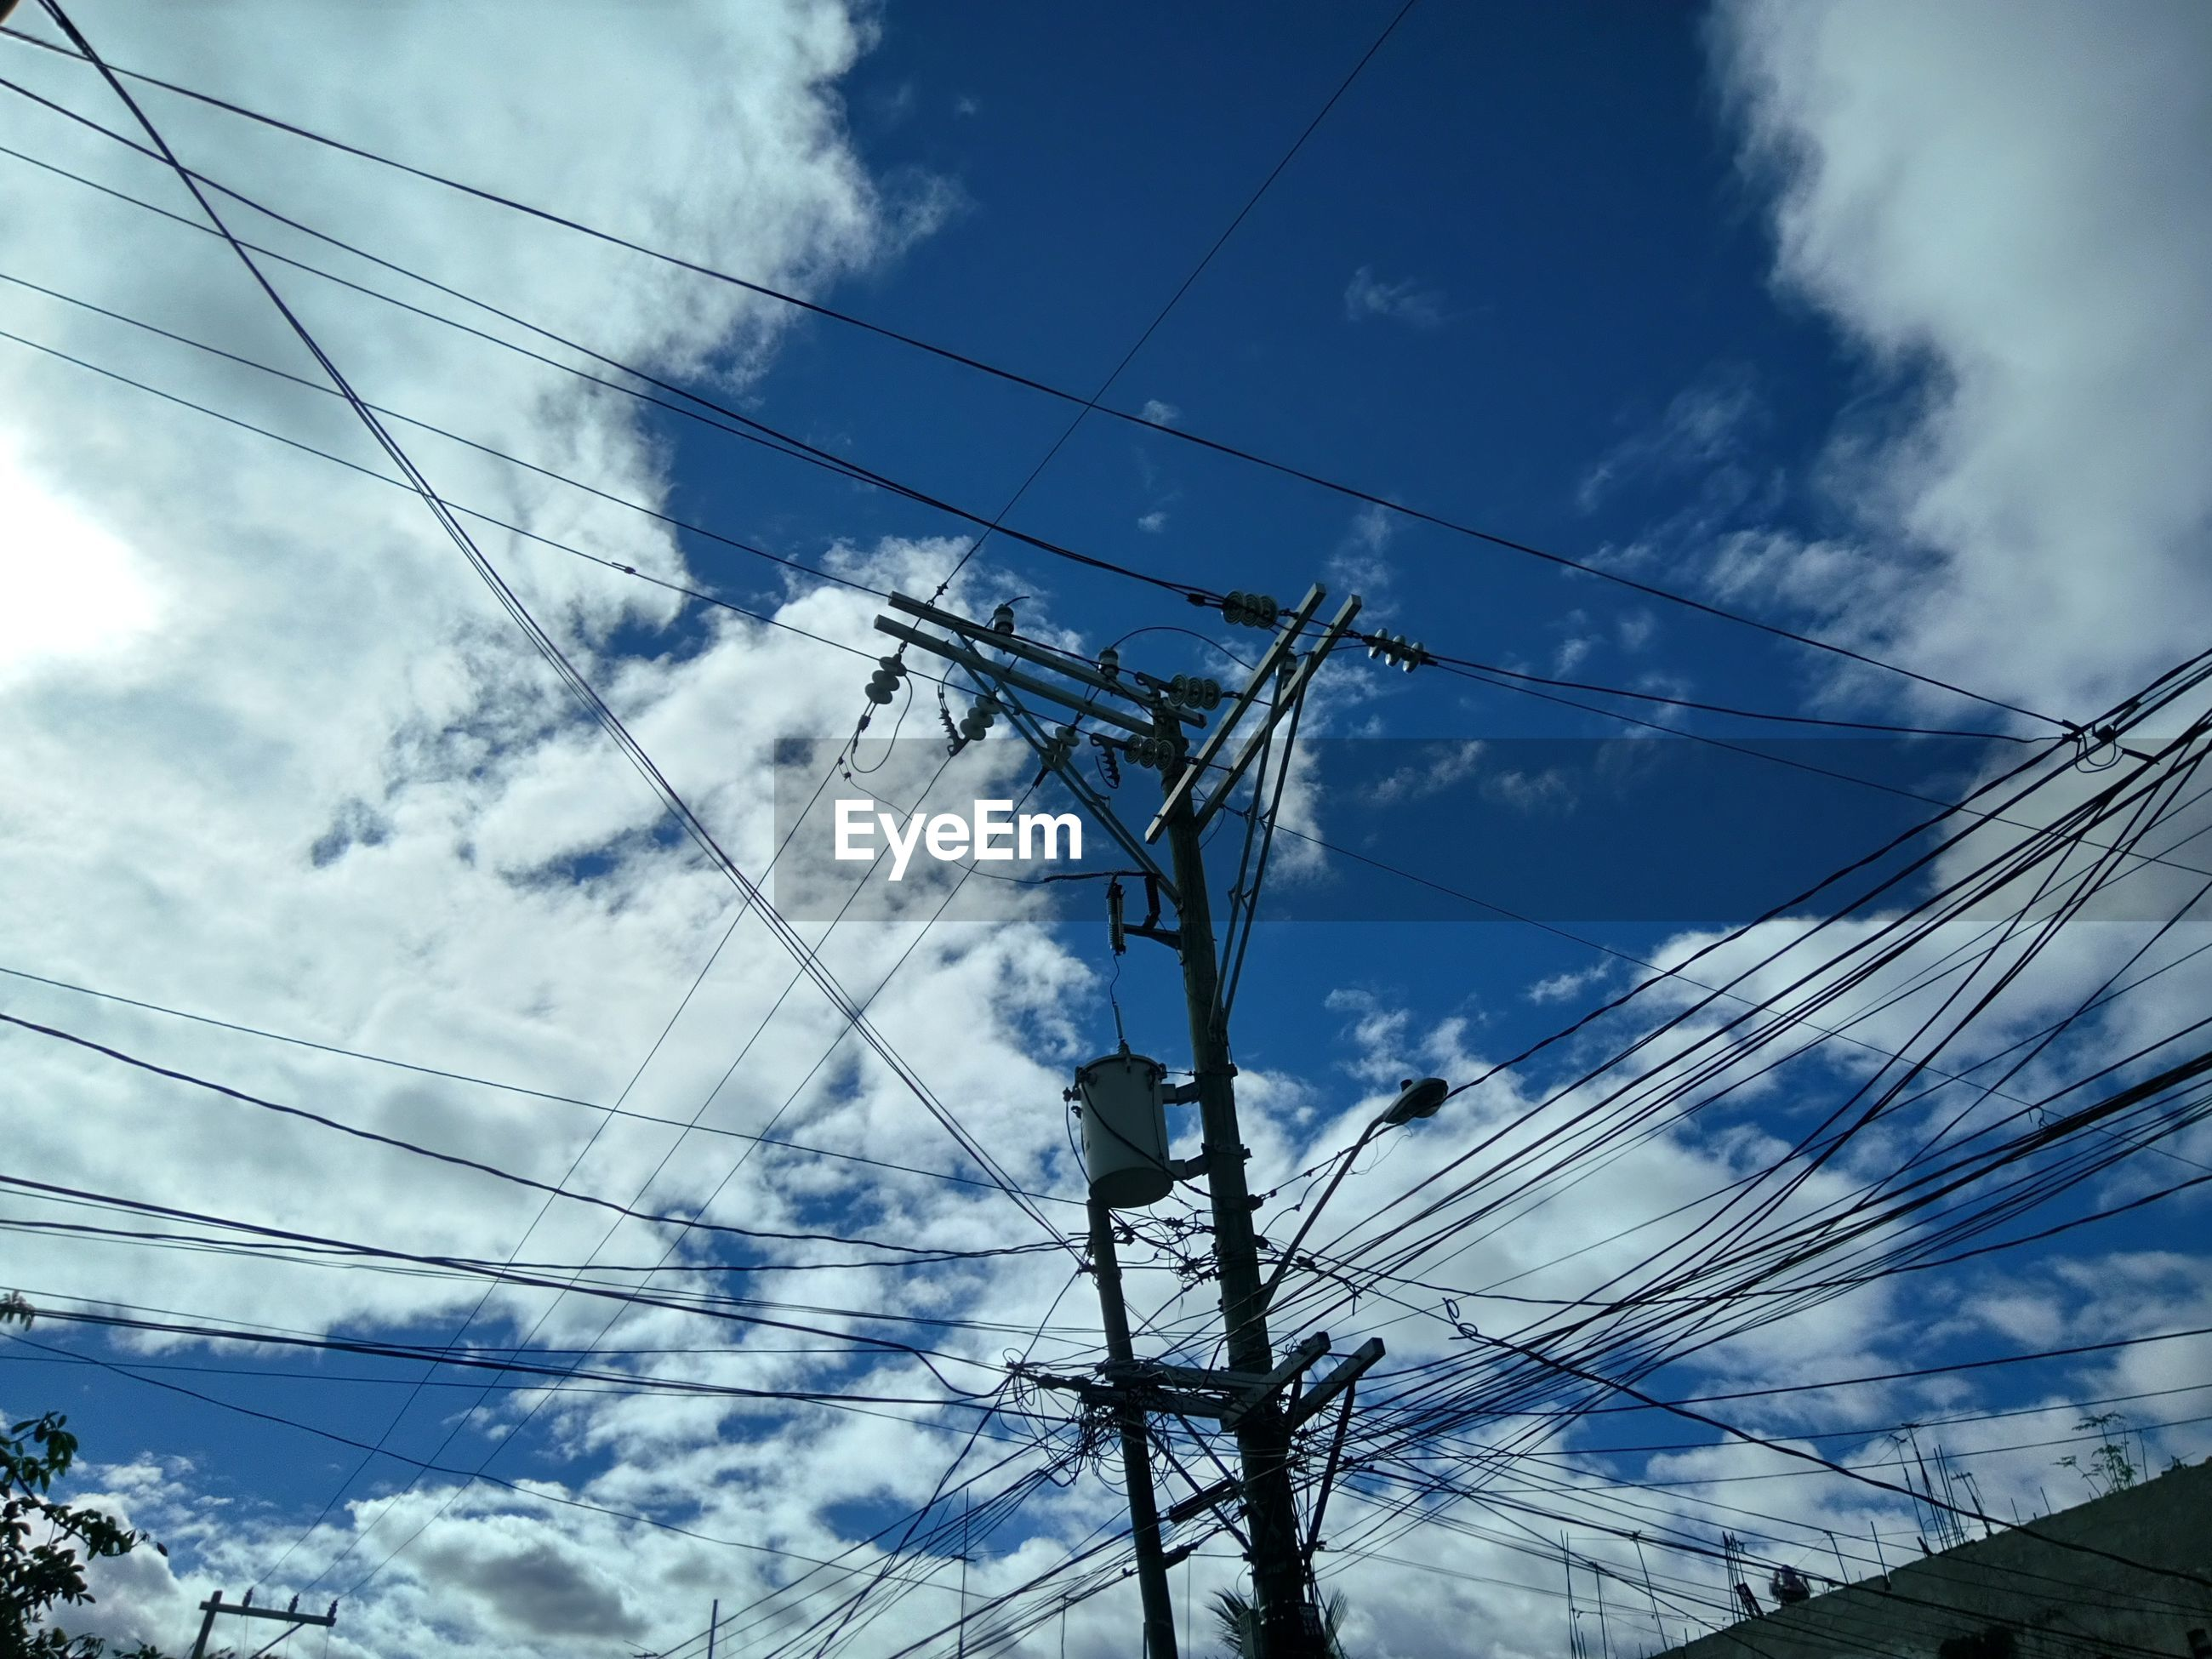 power supply, electricity, cable, power line, connection, sky, fuel and power generation, low angle view, cloud - sky, electricity pylon, technology, complexity, no people, electric pole, outdoors, day, electricity tower, nature, telephone line